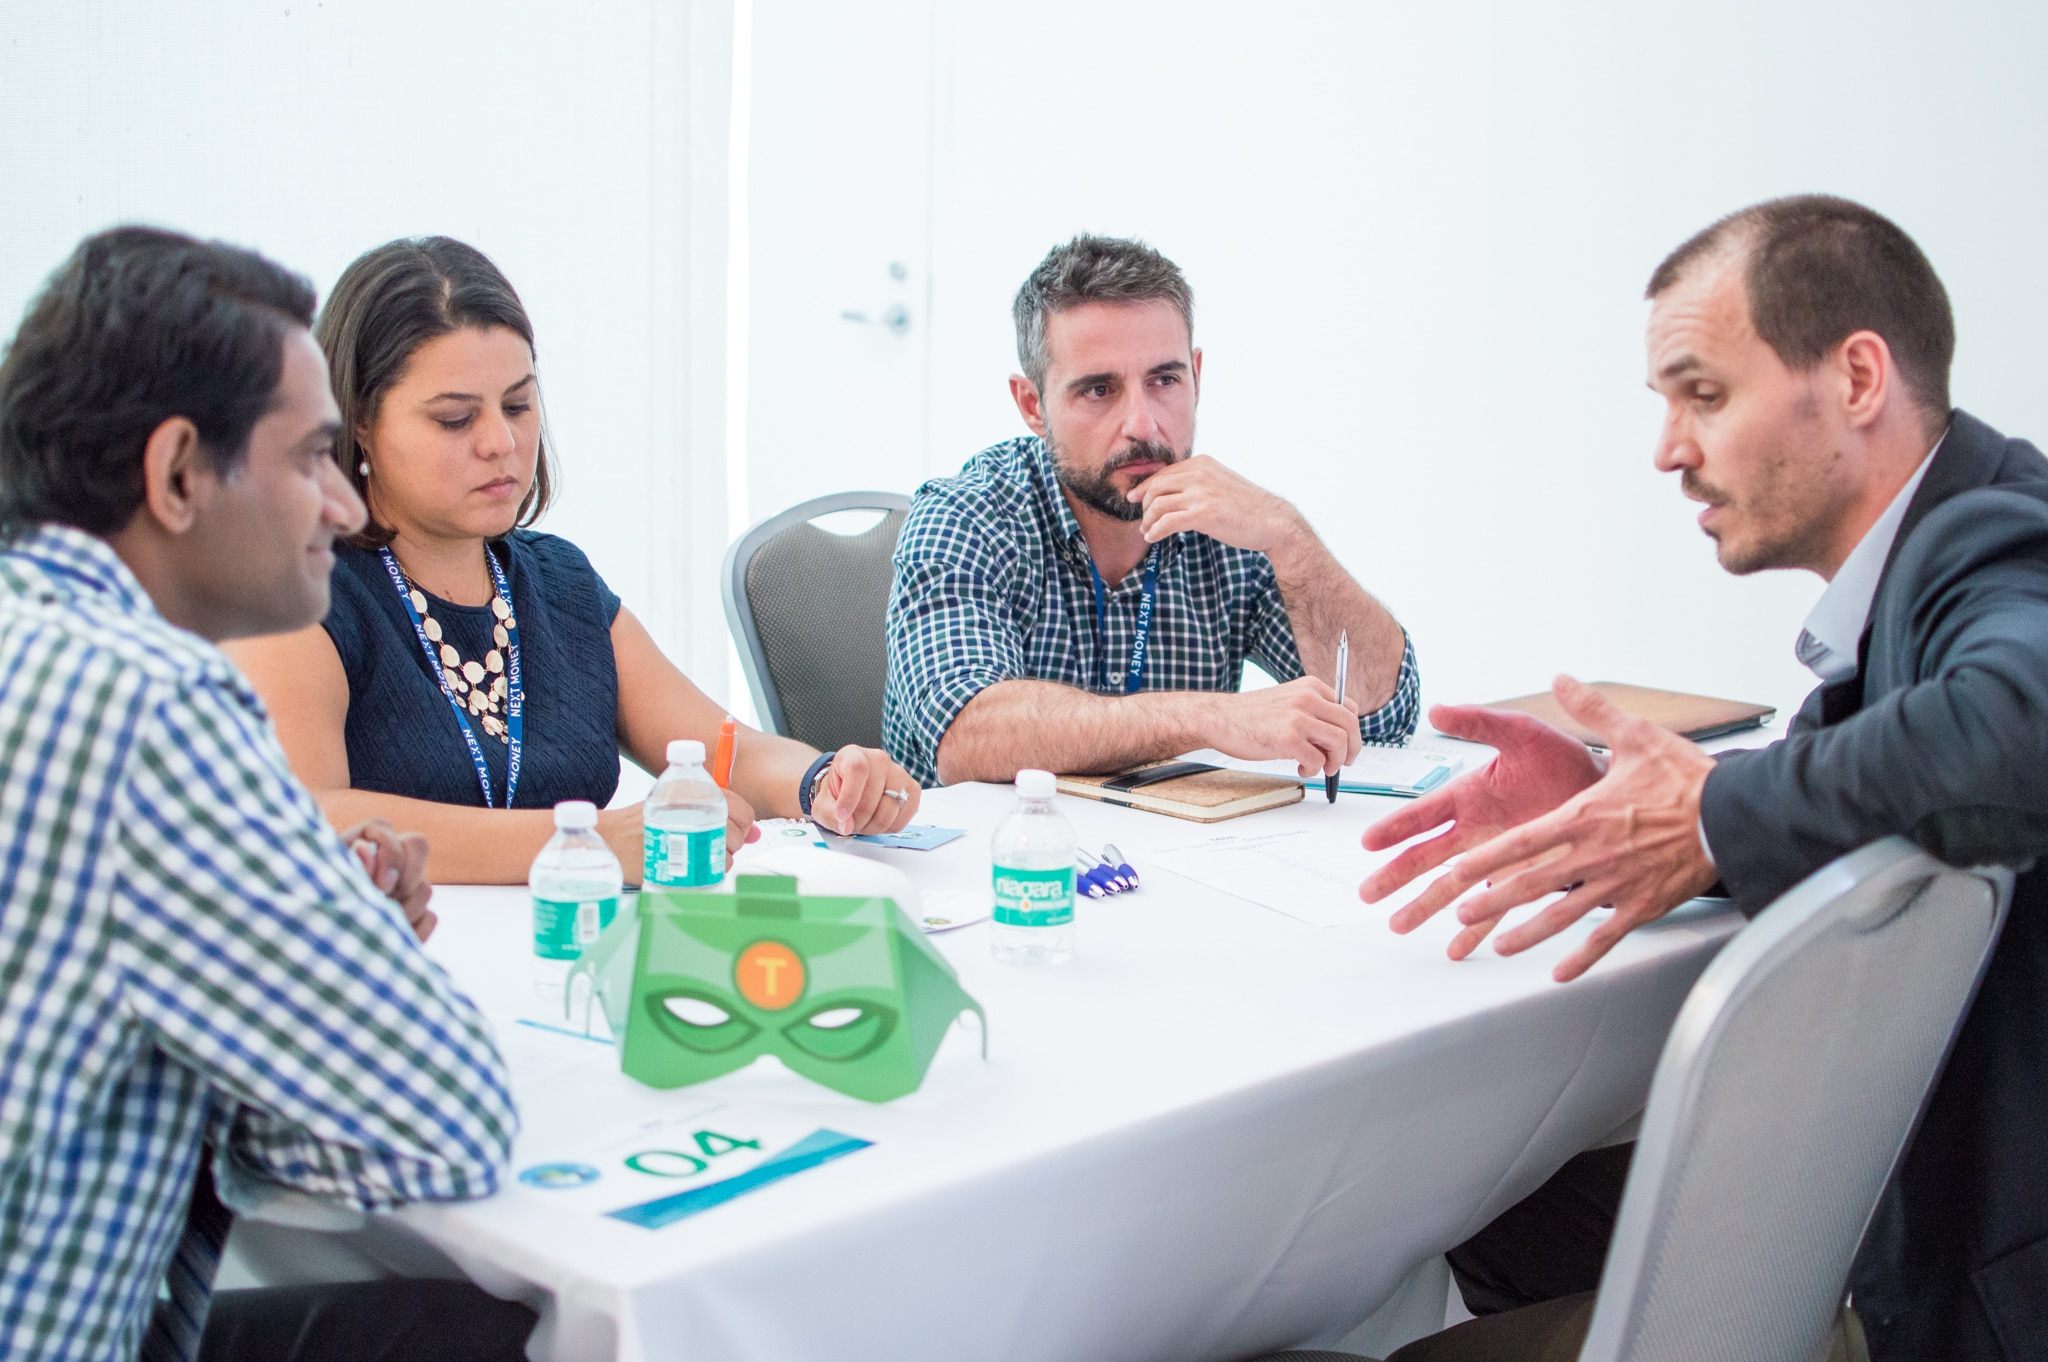 BBVA Open Talent Digital Trends finalists talk to BBVA executives during 'Speed Dating'